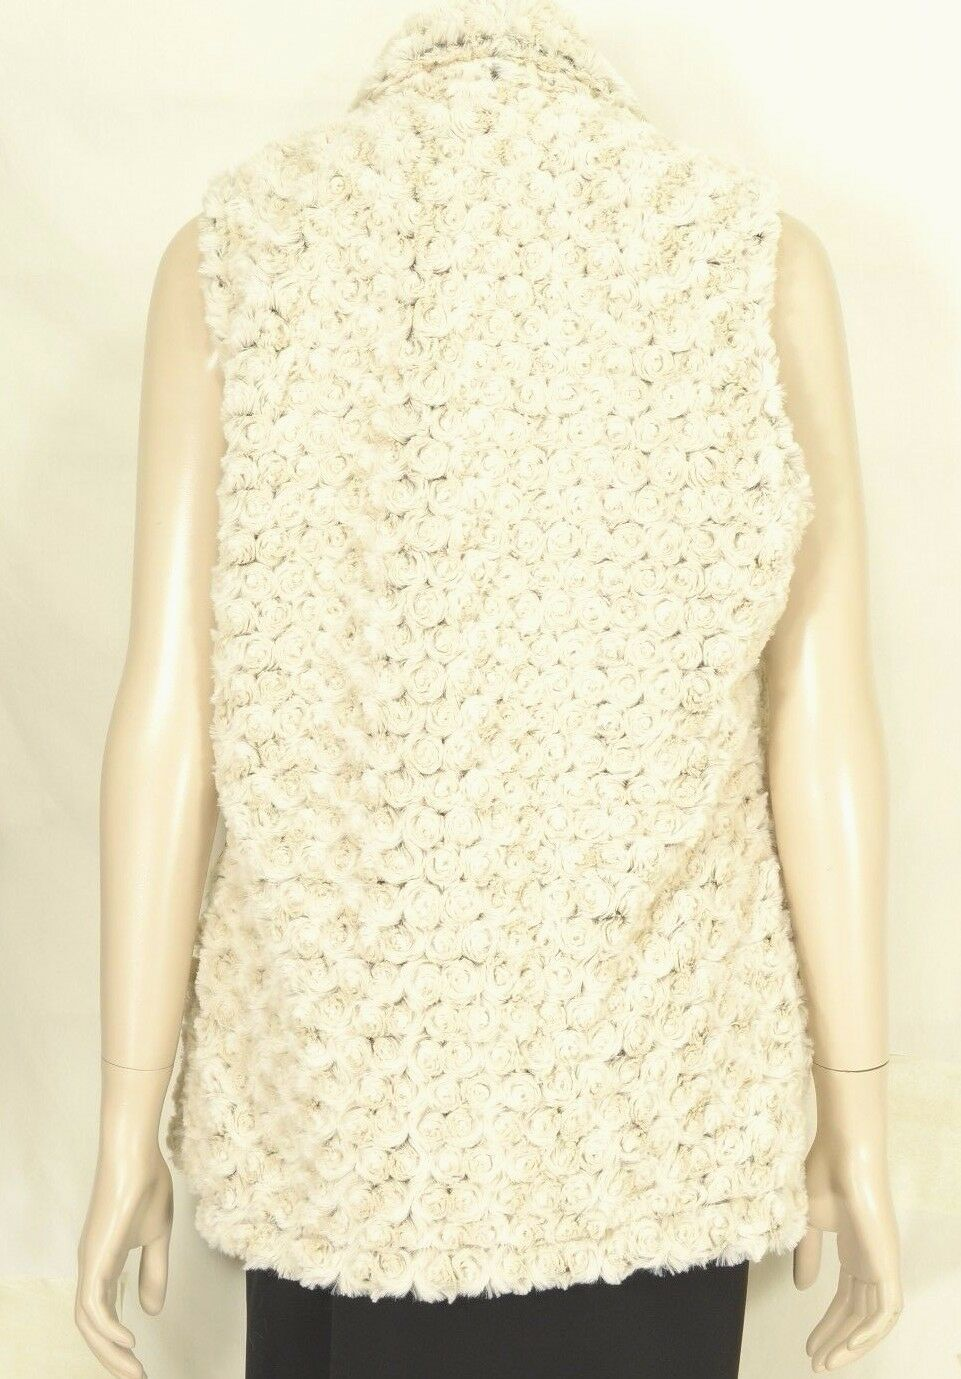 Vine Street vest SZ L NWT off white faux fur soft comfy feels like real fur USA